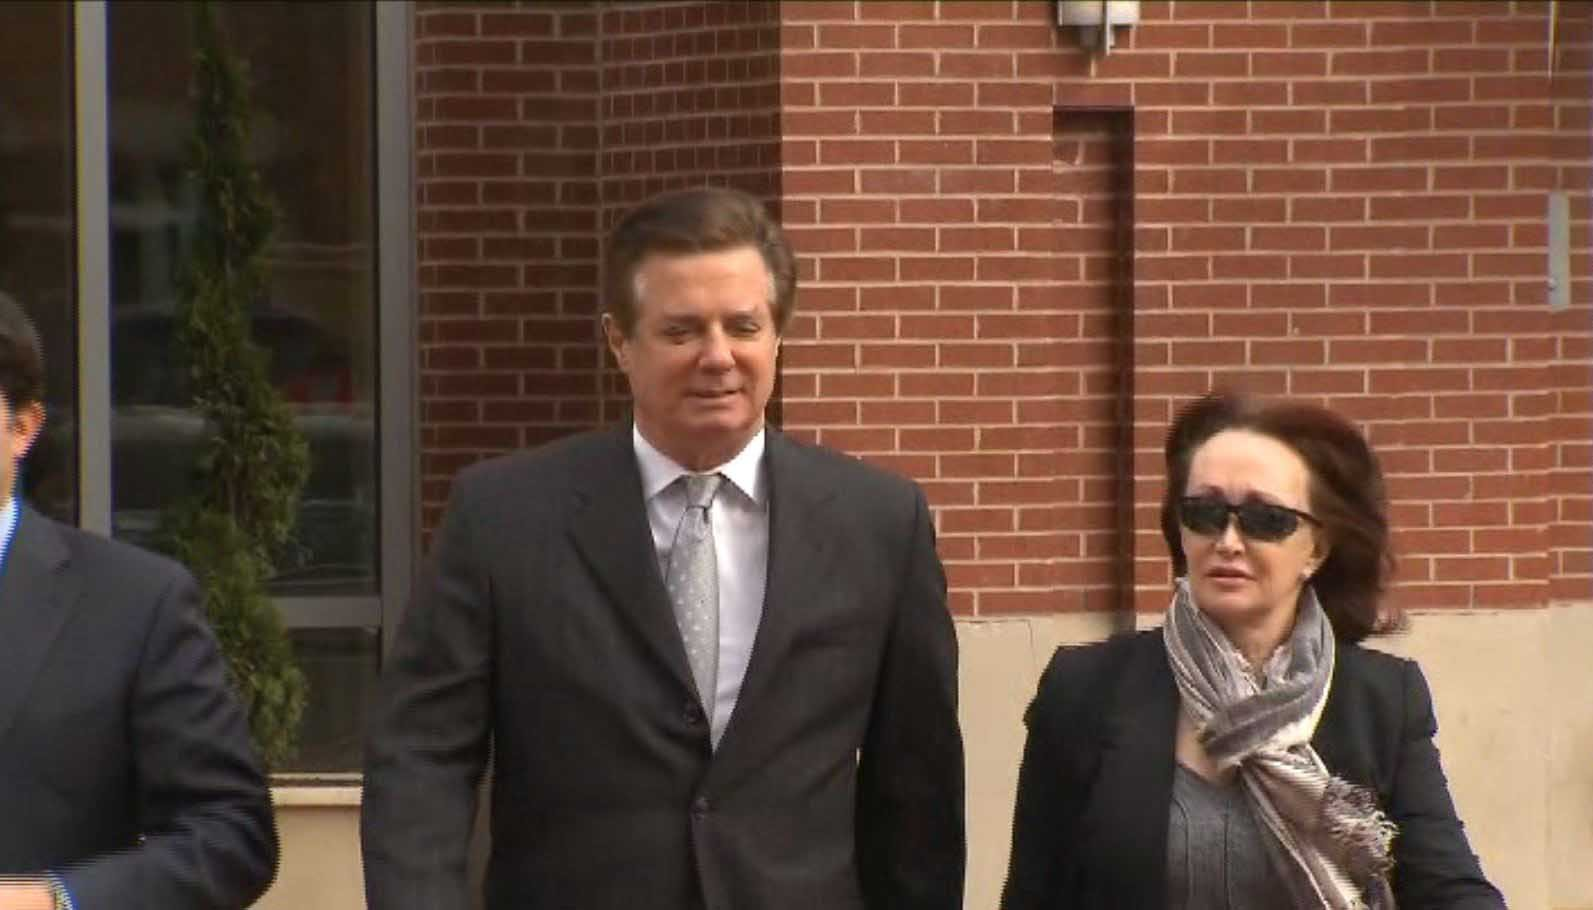 A federal judge rejected former Trump campaign chairman Paul Manafort's request to dismiss the criminal case against him. (Source: CNN)